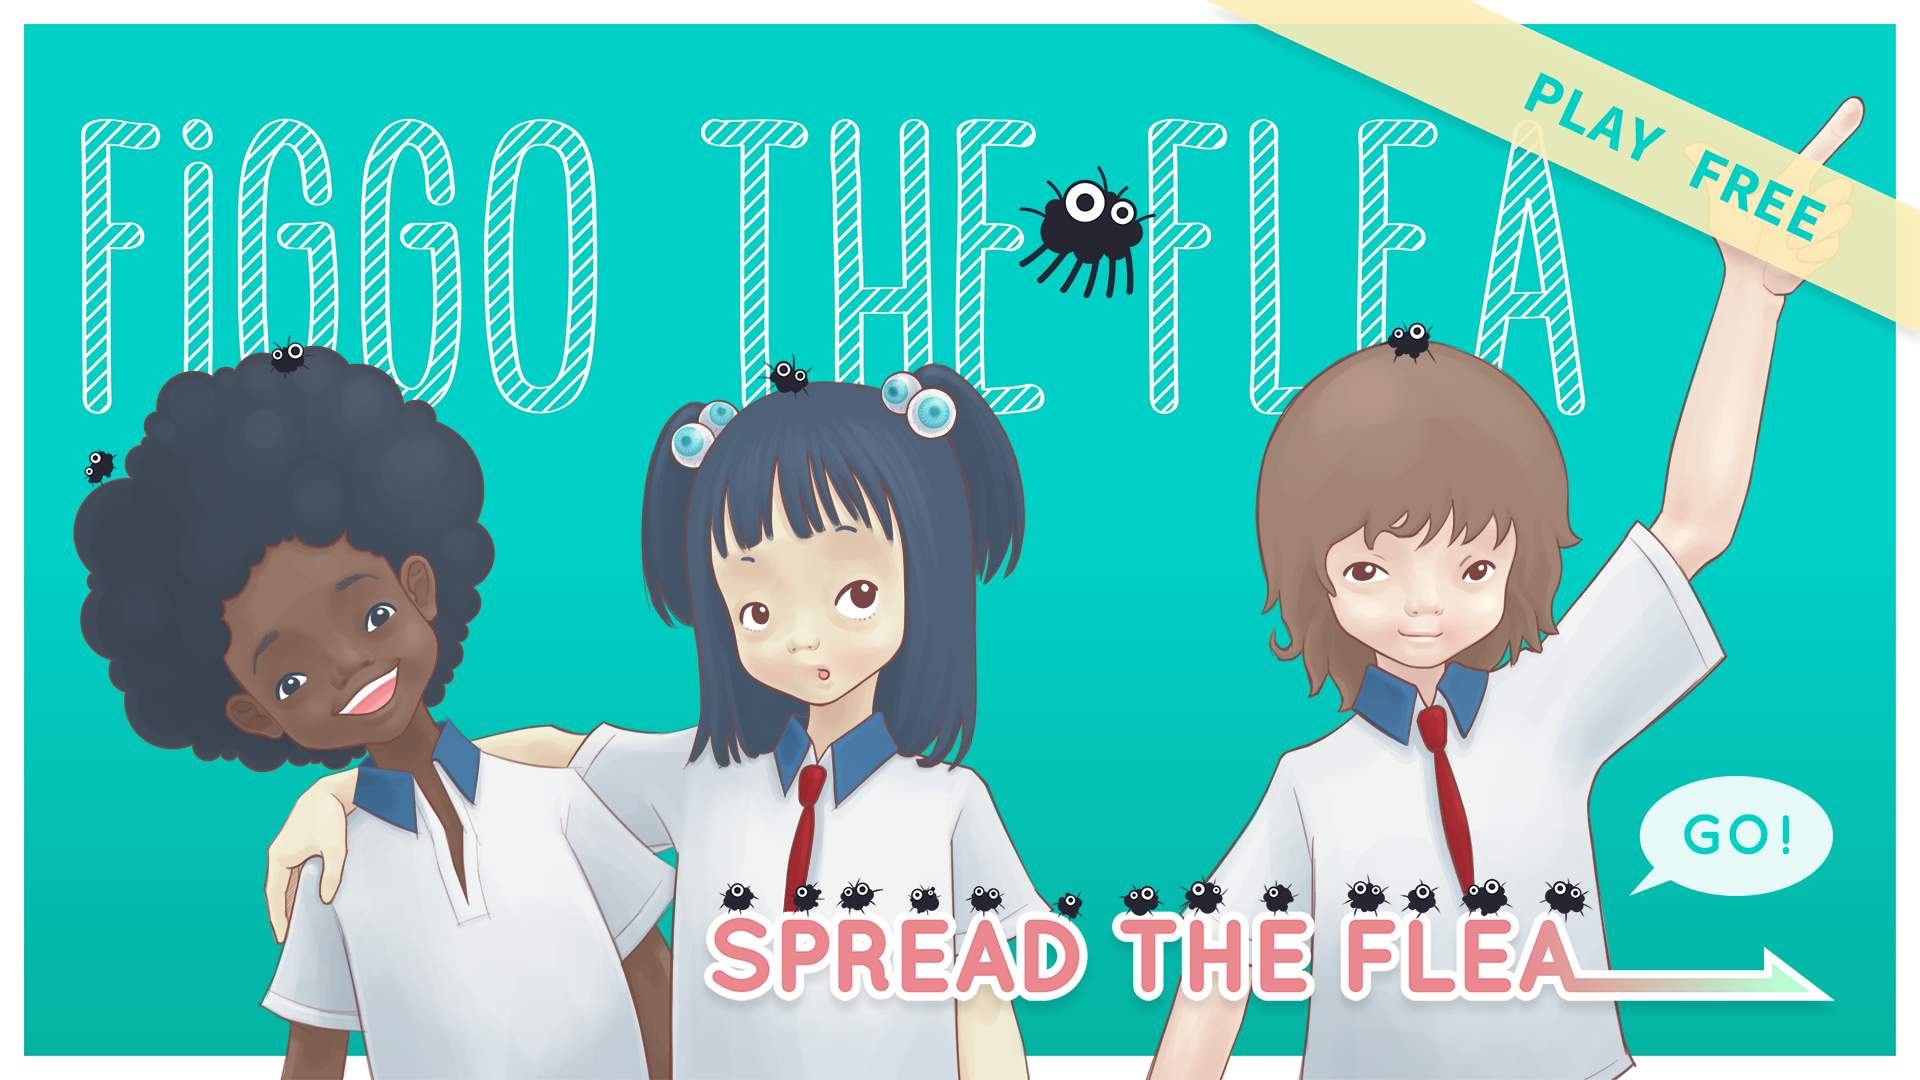 Figgo the Flea